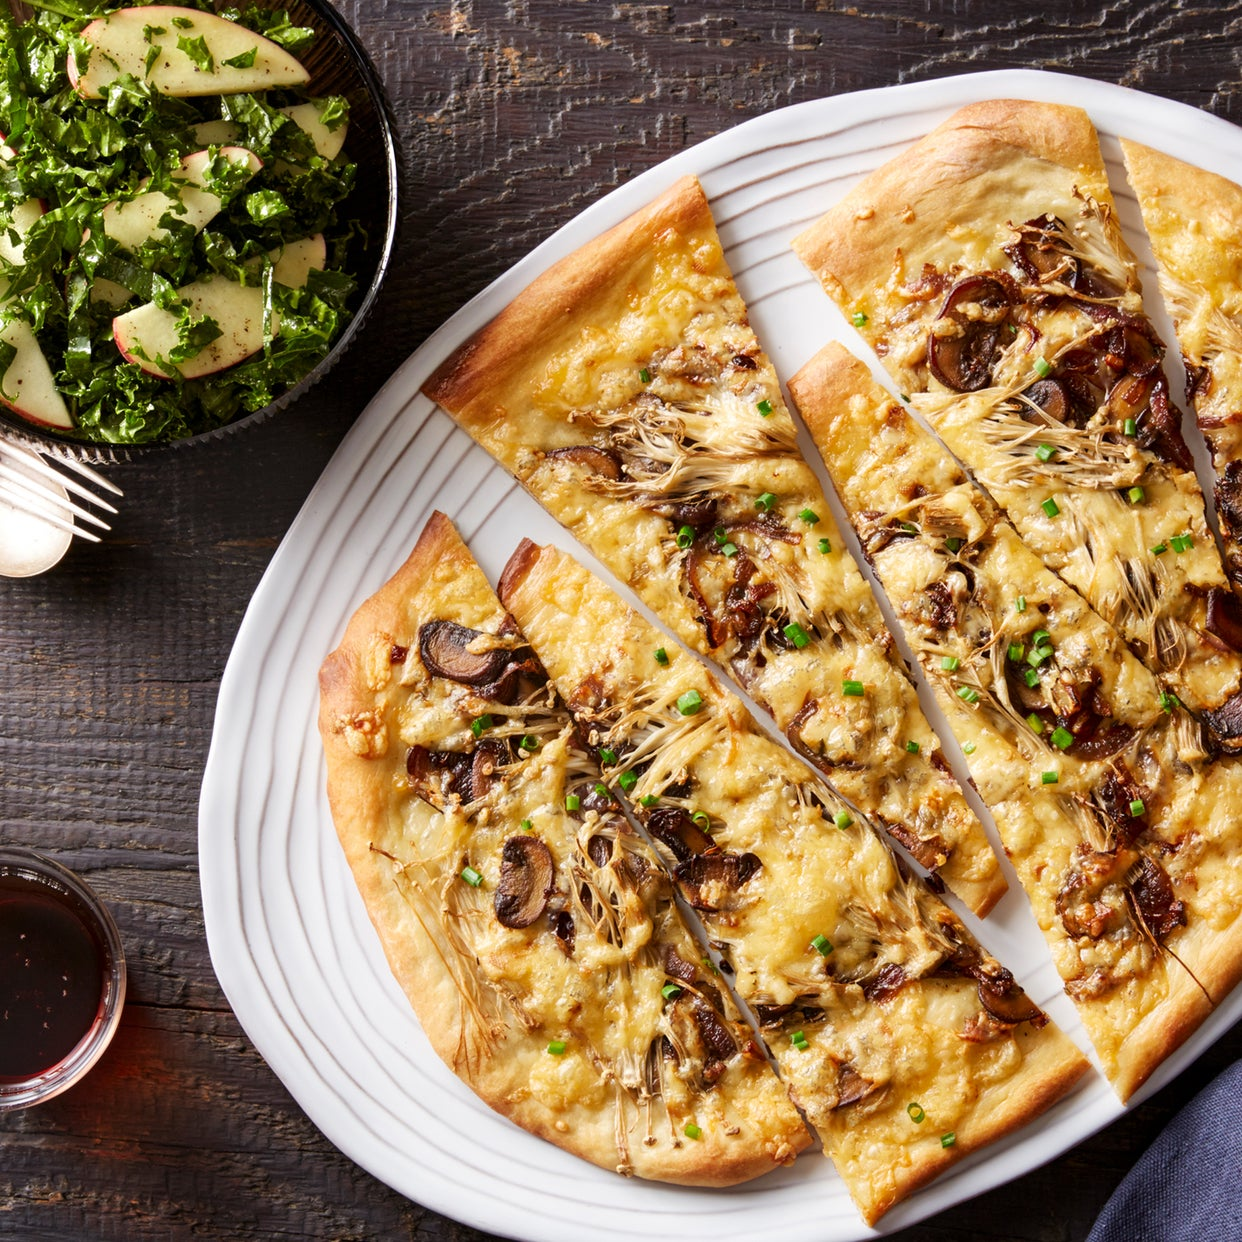 Smoked Gouda & Mushroom Flatbread with Kale & Apple Salad